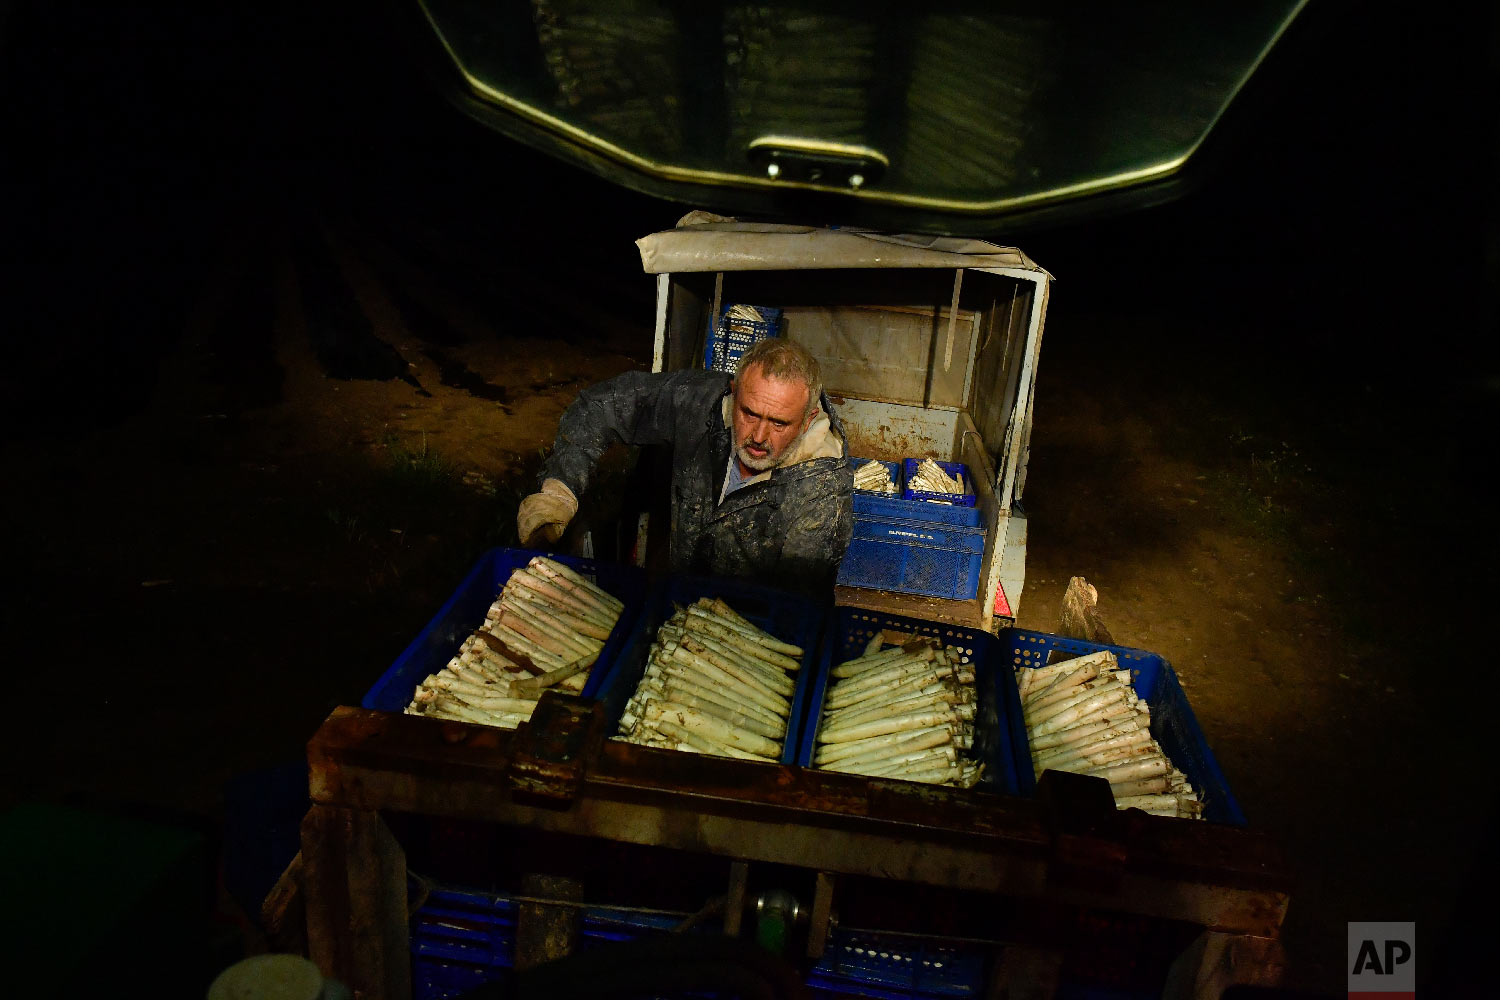 Pedro Pascual, 53, arranges white asparagus after collecting them from a field in Caparroso, around 85 km (52 miles) from Pamplona, northern Spain on Thursday, May 31, 2018. (AP Photo/Alvaro Barrientos)